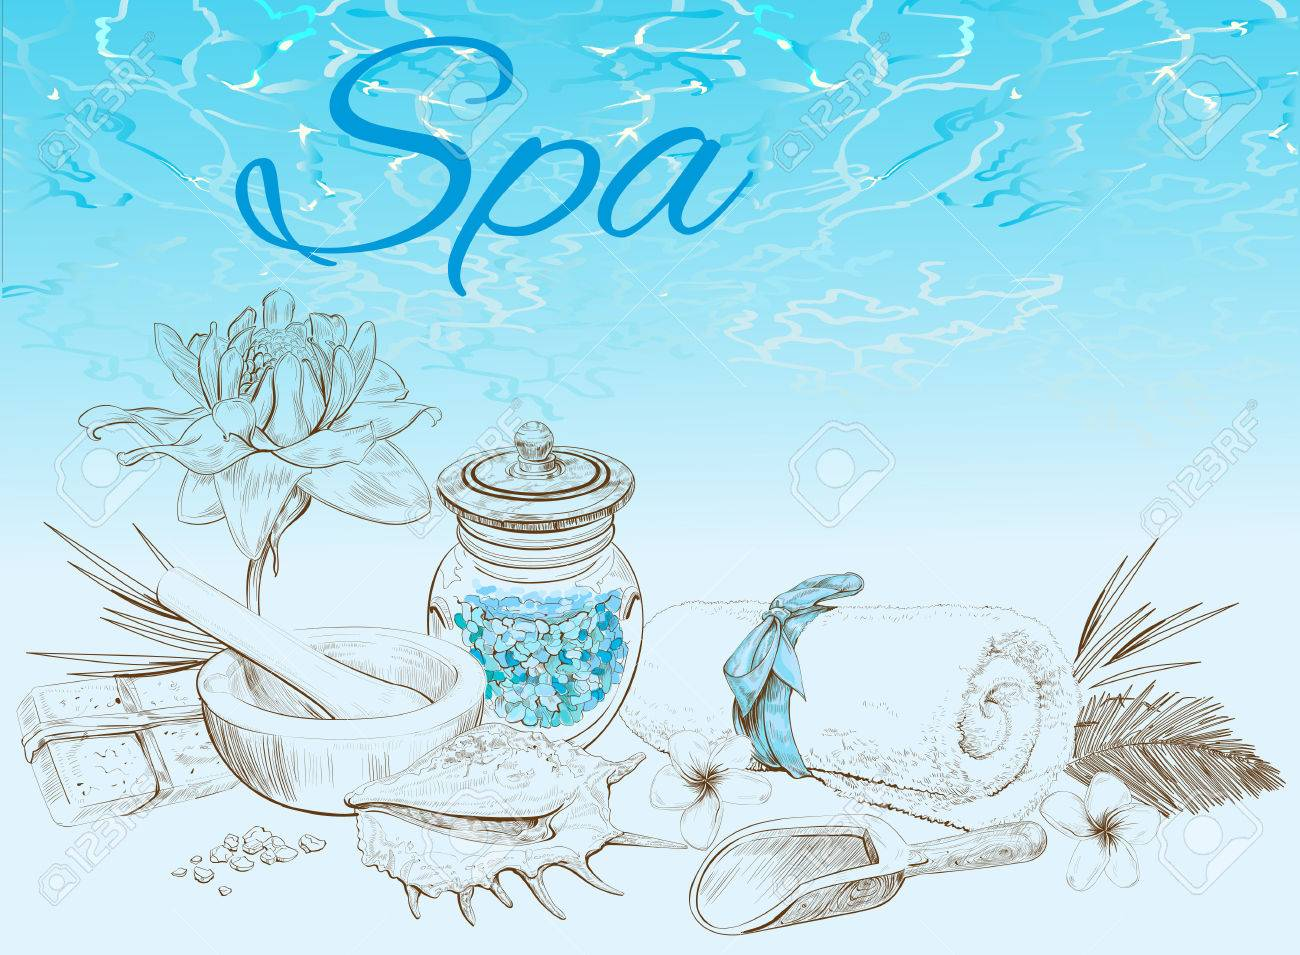 Spa Treatment Banner On Graphic Background Design For Cosmetics Royalty Free Cliparts Vectors And Stock Illustration Image 59100771